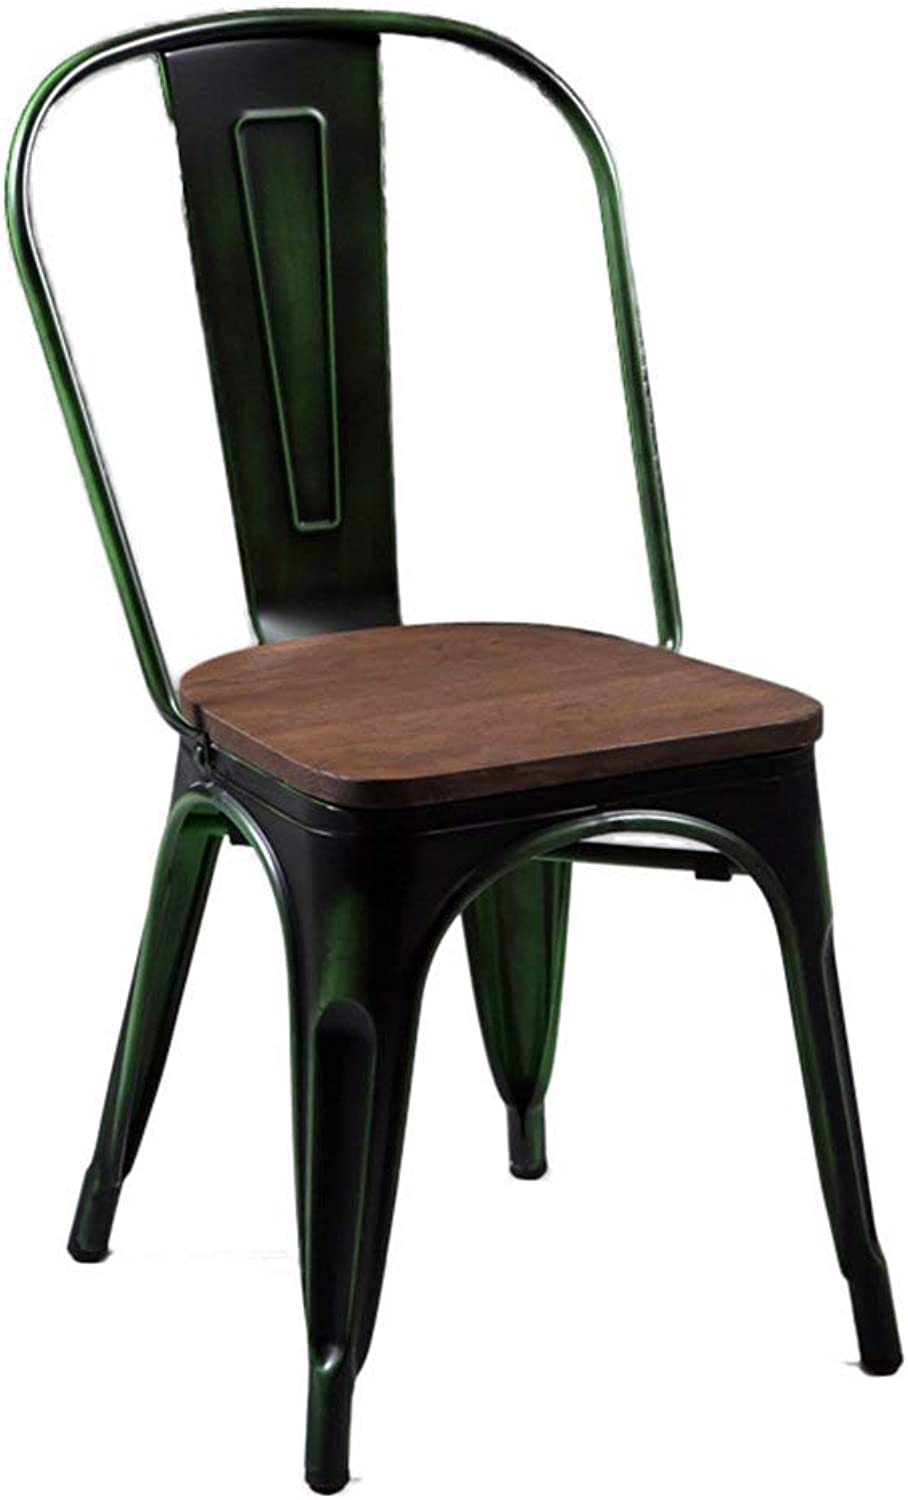 Retro Dining Chairs, Industry Metal Solid Wood Cafe Iron Chair Leisure Chair Restaurant Chairs Intentionally Old Bar Decorative Chair 44  47  85cm Various Styles (color   Colour  F)